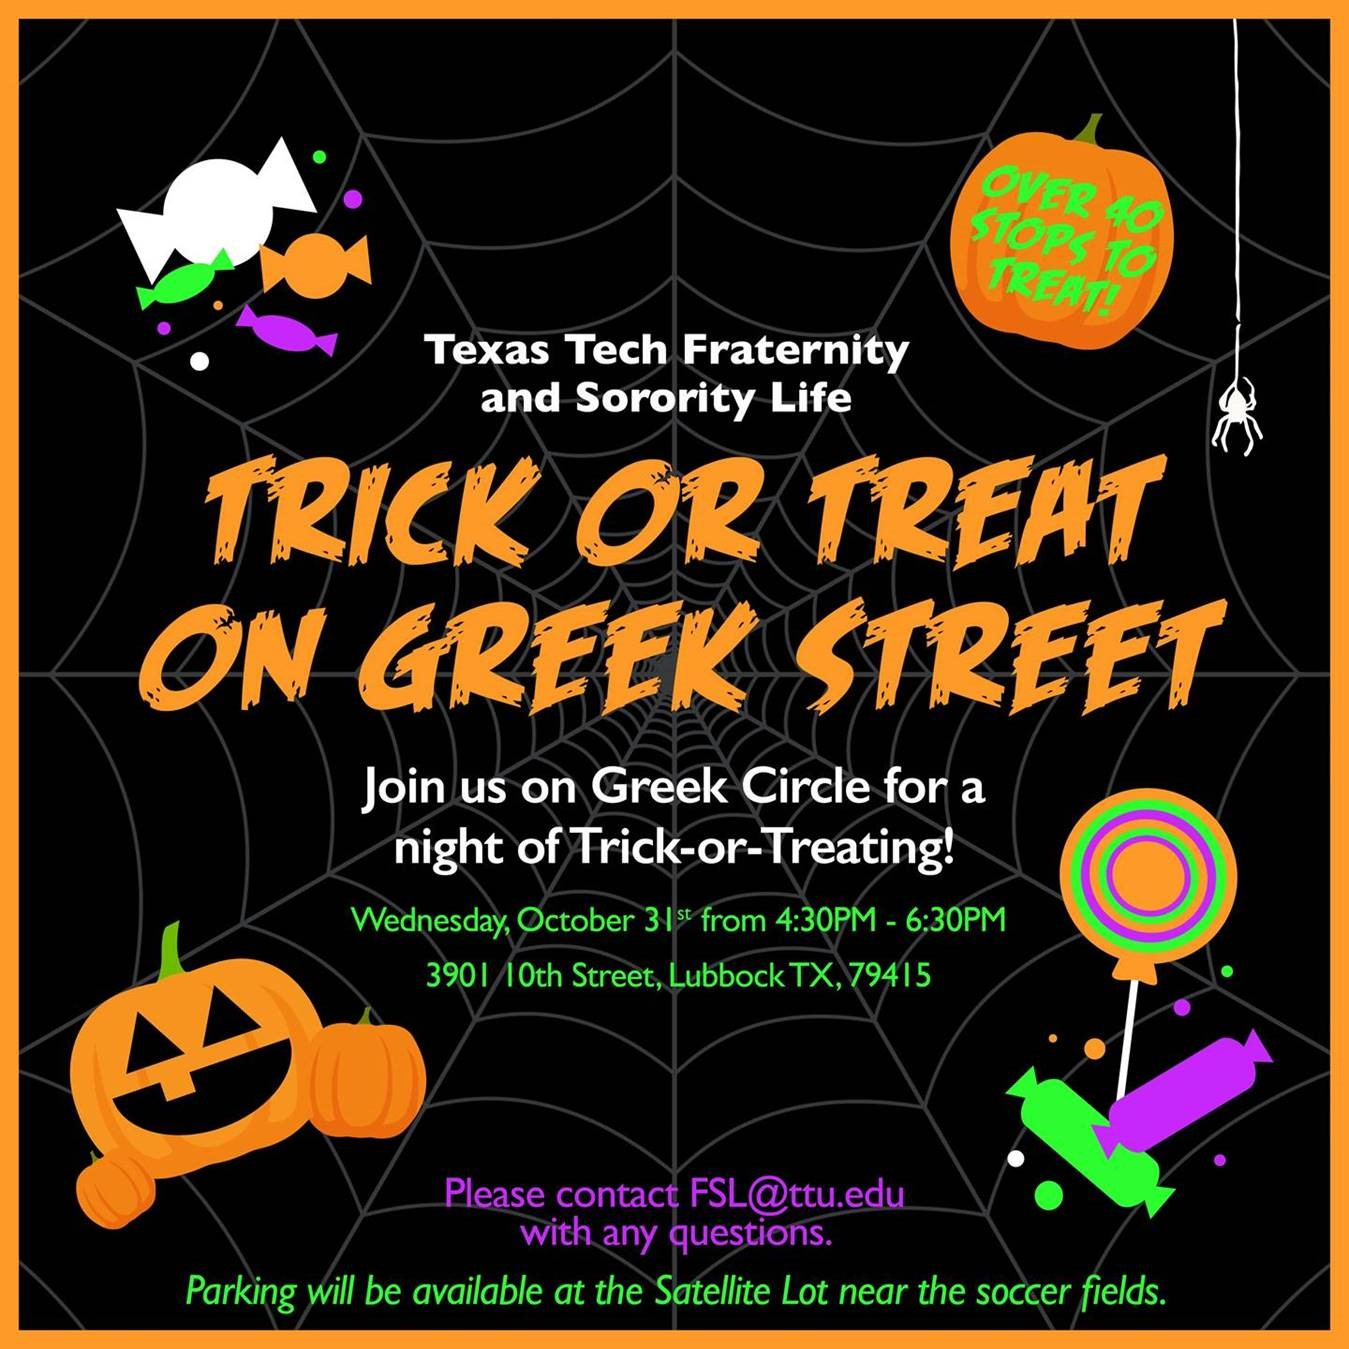 fraternity and sorority life will host halloween event | texas tech